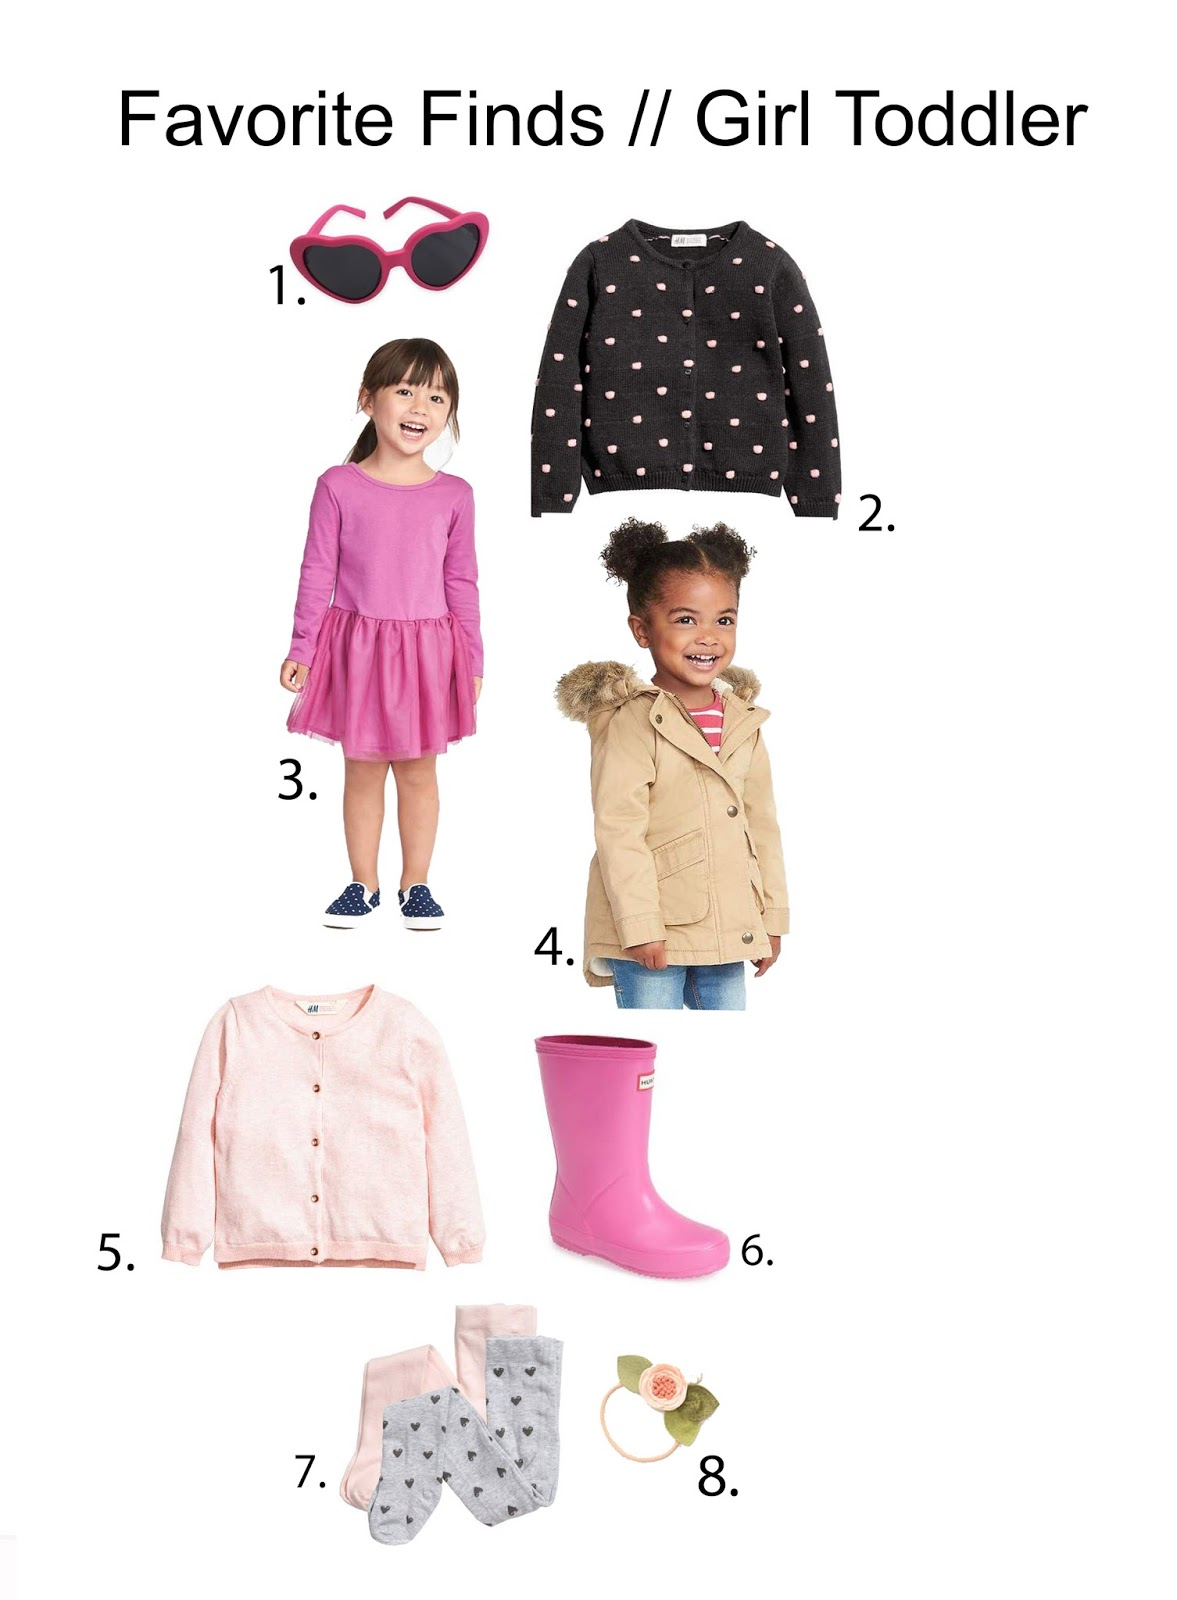 girl toddler outfits, girl toddler outfit ideas, girl toddler sweater, dress, heart sunglasses